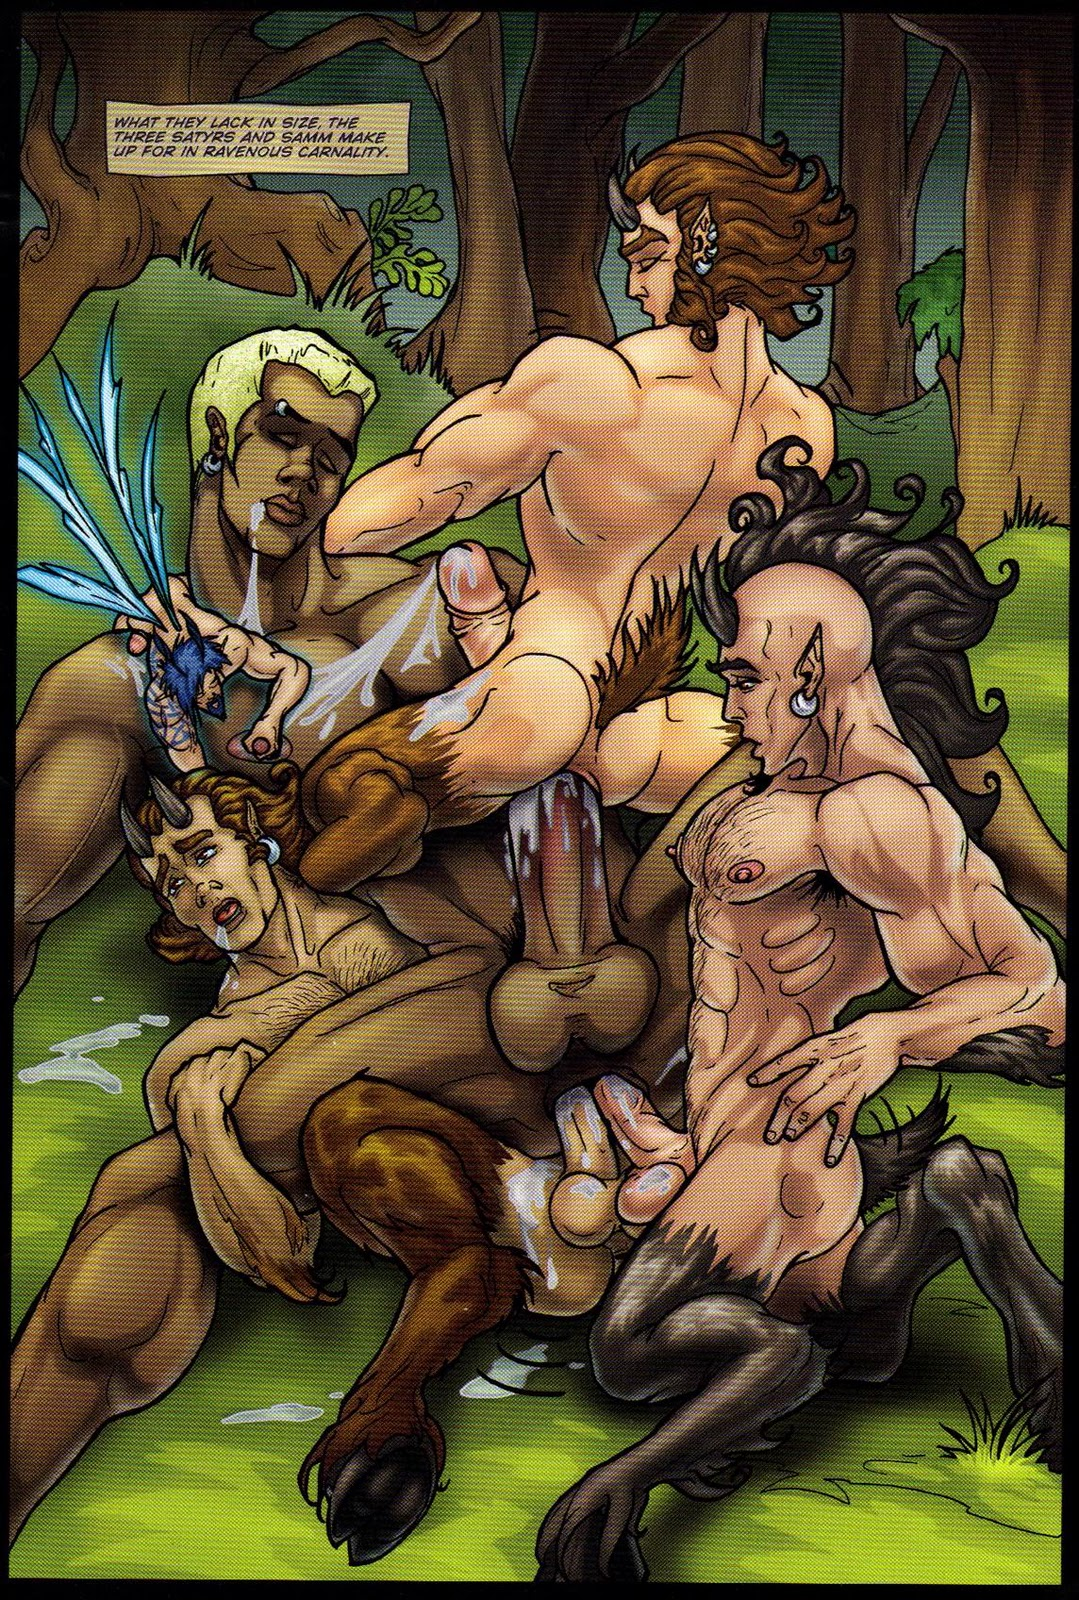 Erotic drawings satyr fucking woman on top smut movie